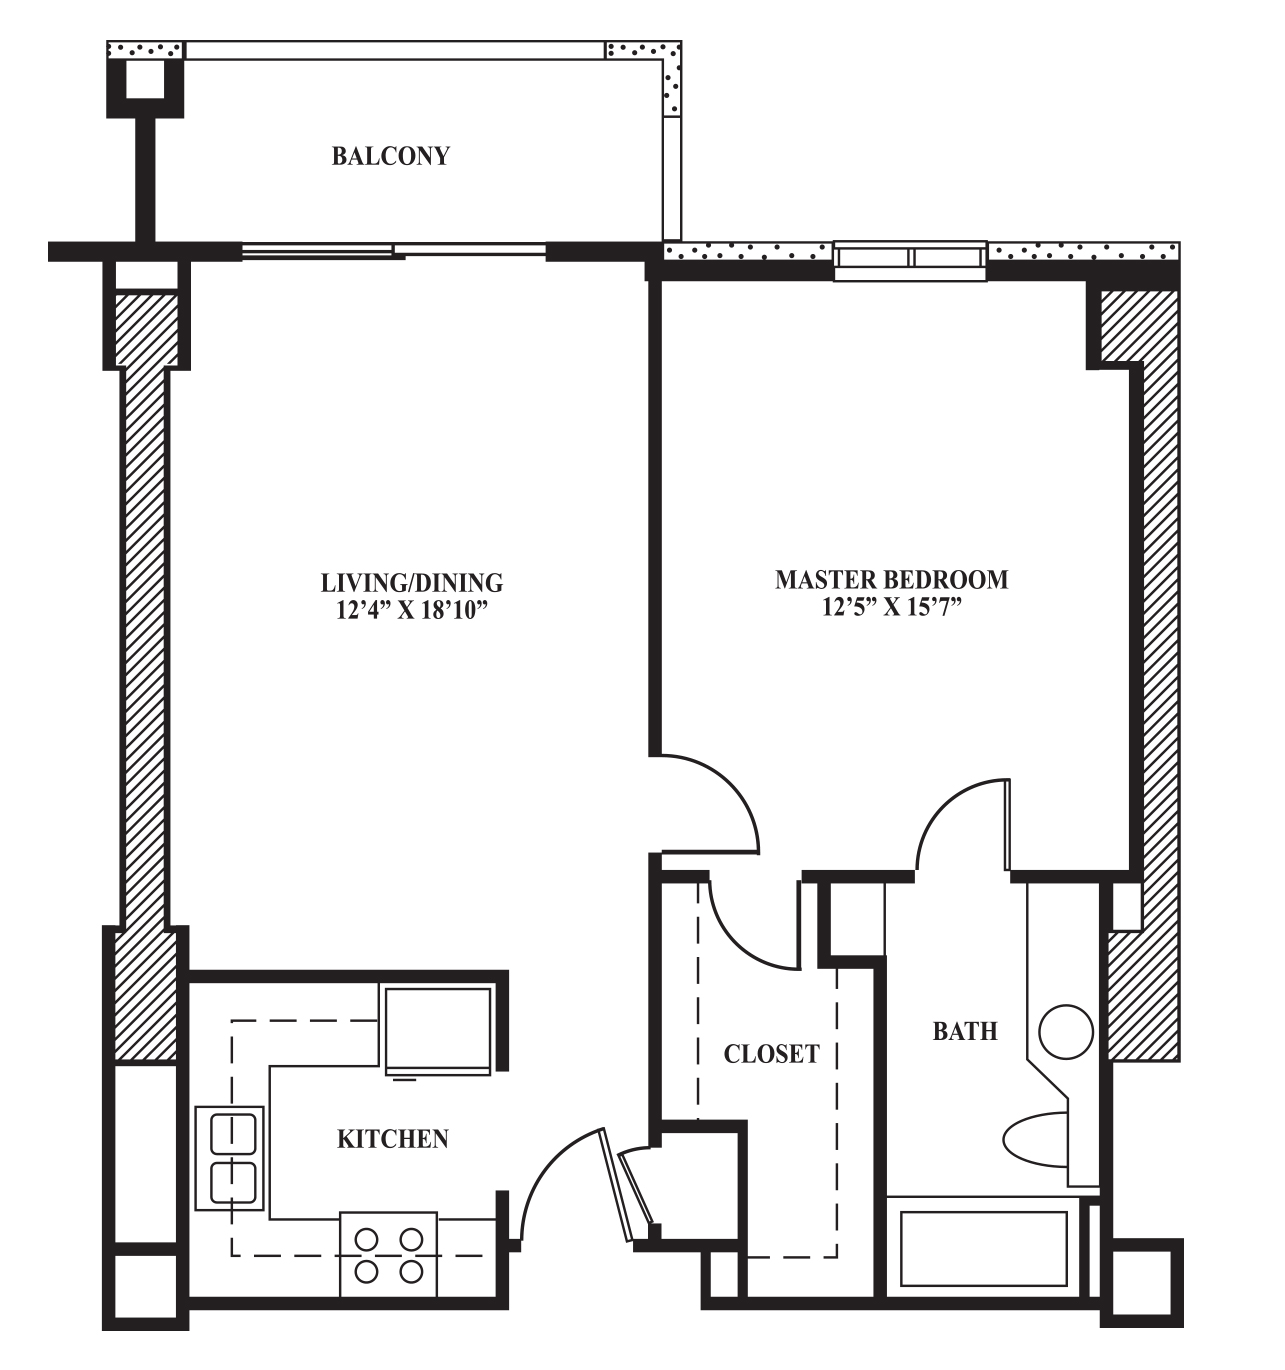 Medium image of select a floor plan